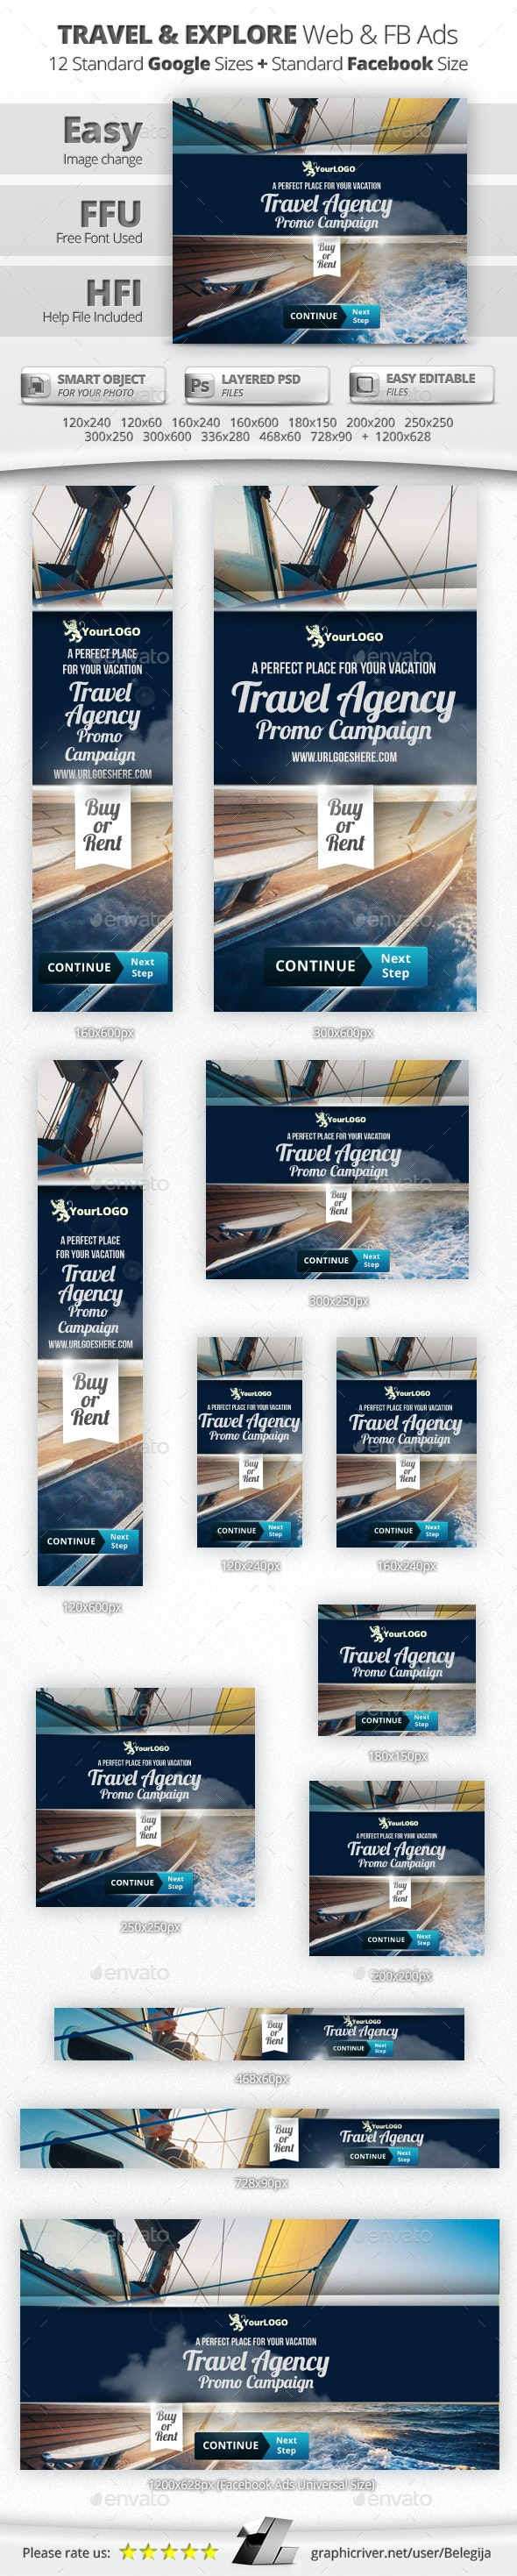 Travel & Explore Web & Facebook Banners - Banners & Ads Web Elements